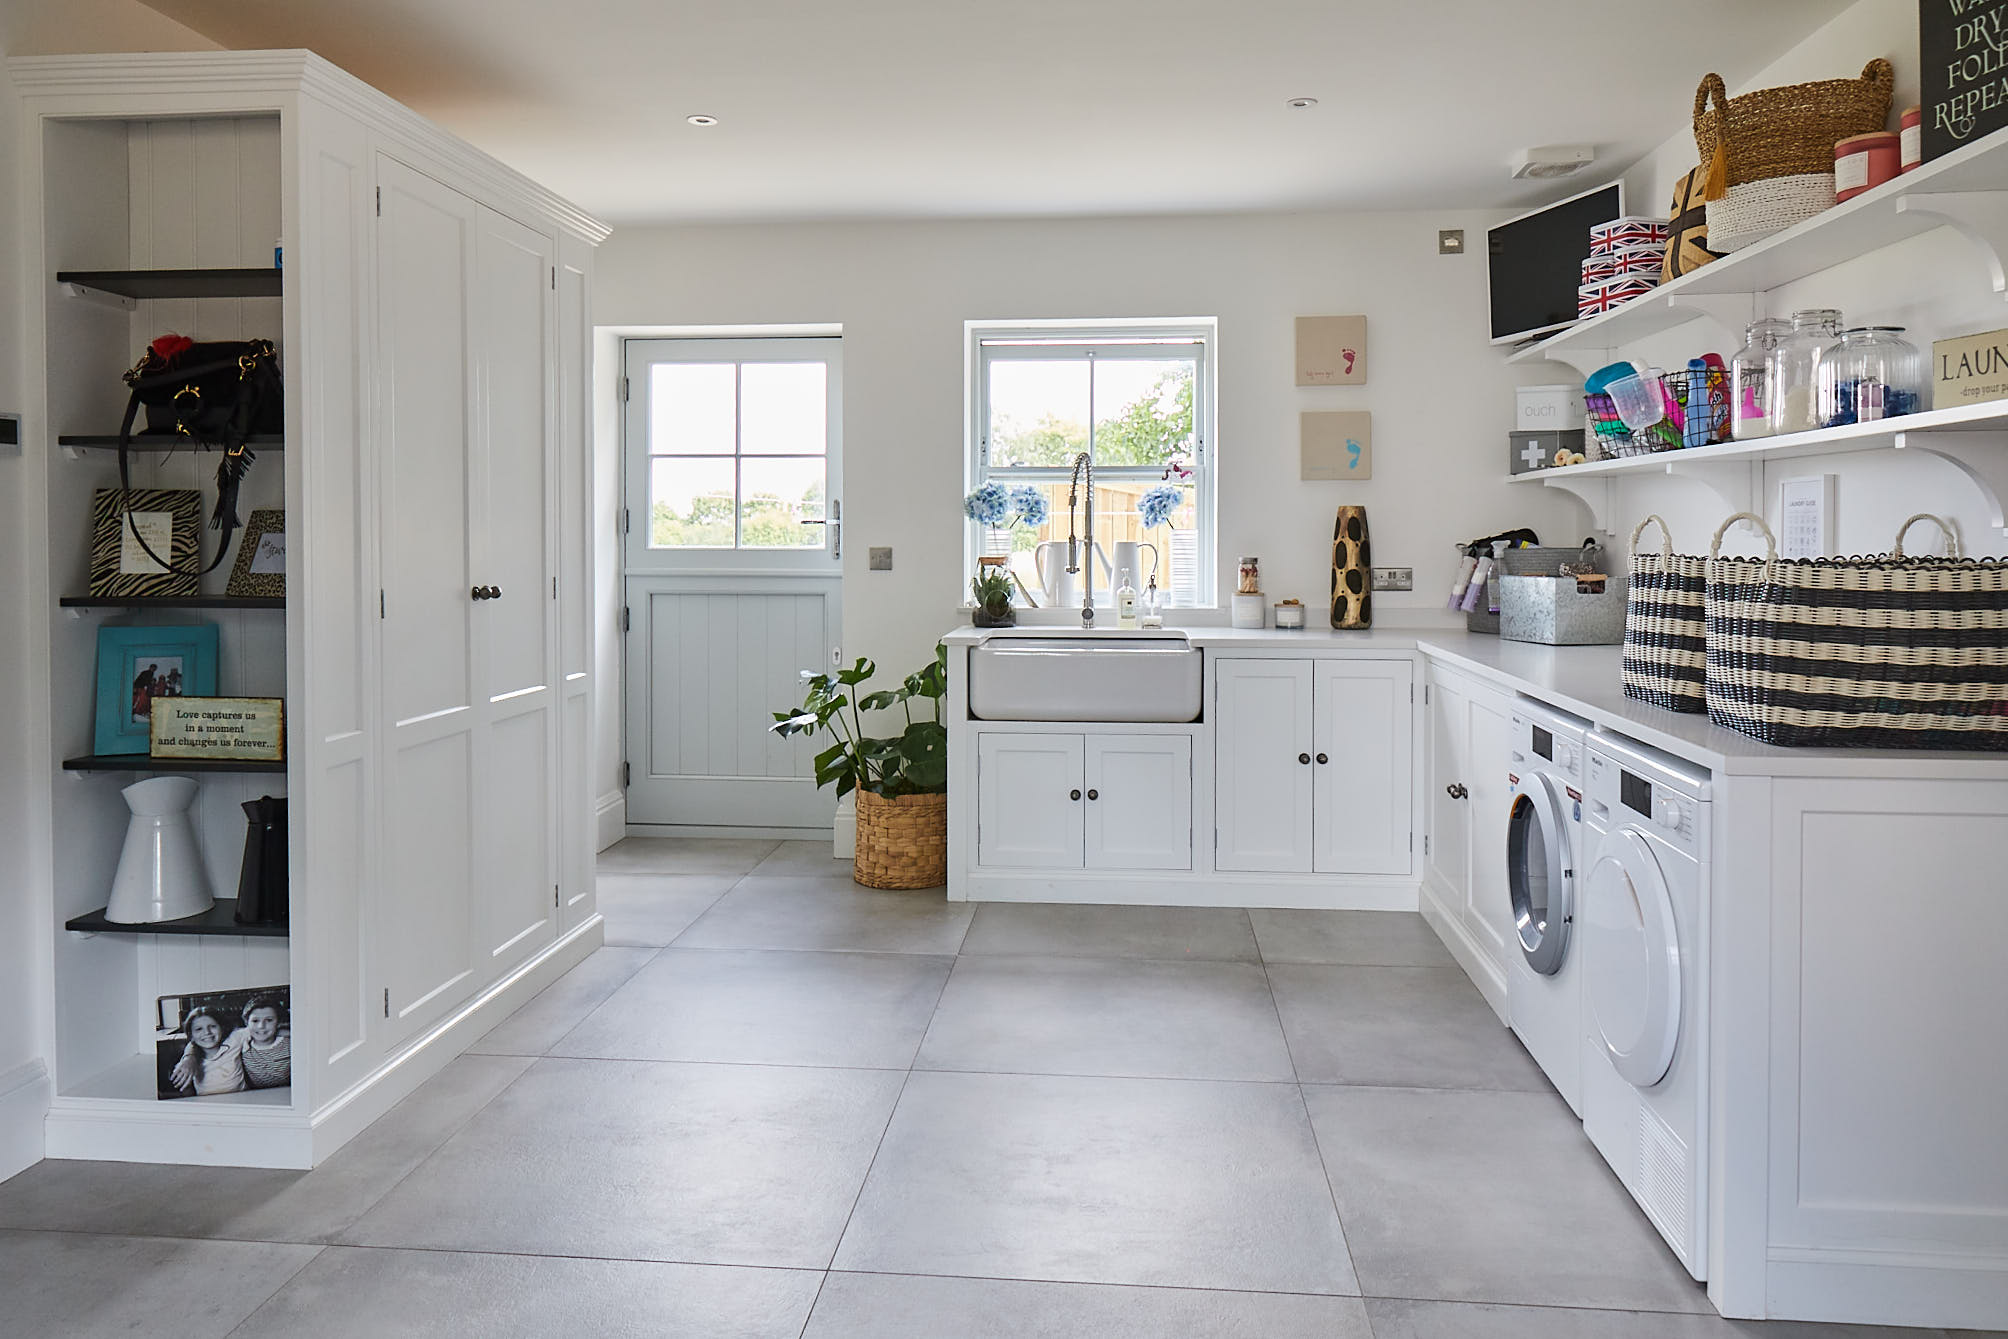 Bright white utility with large square porcelain tiles